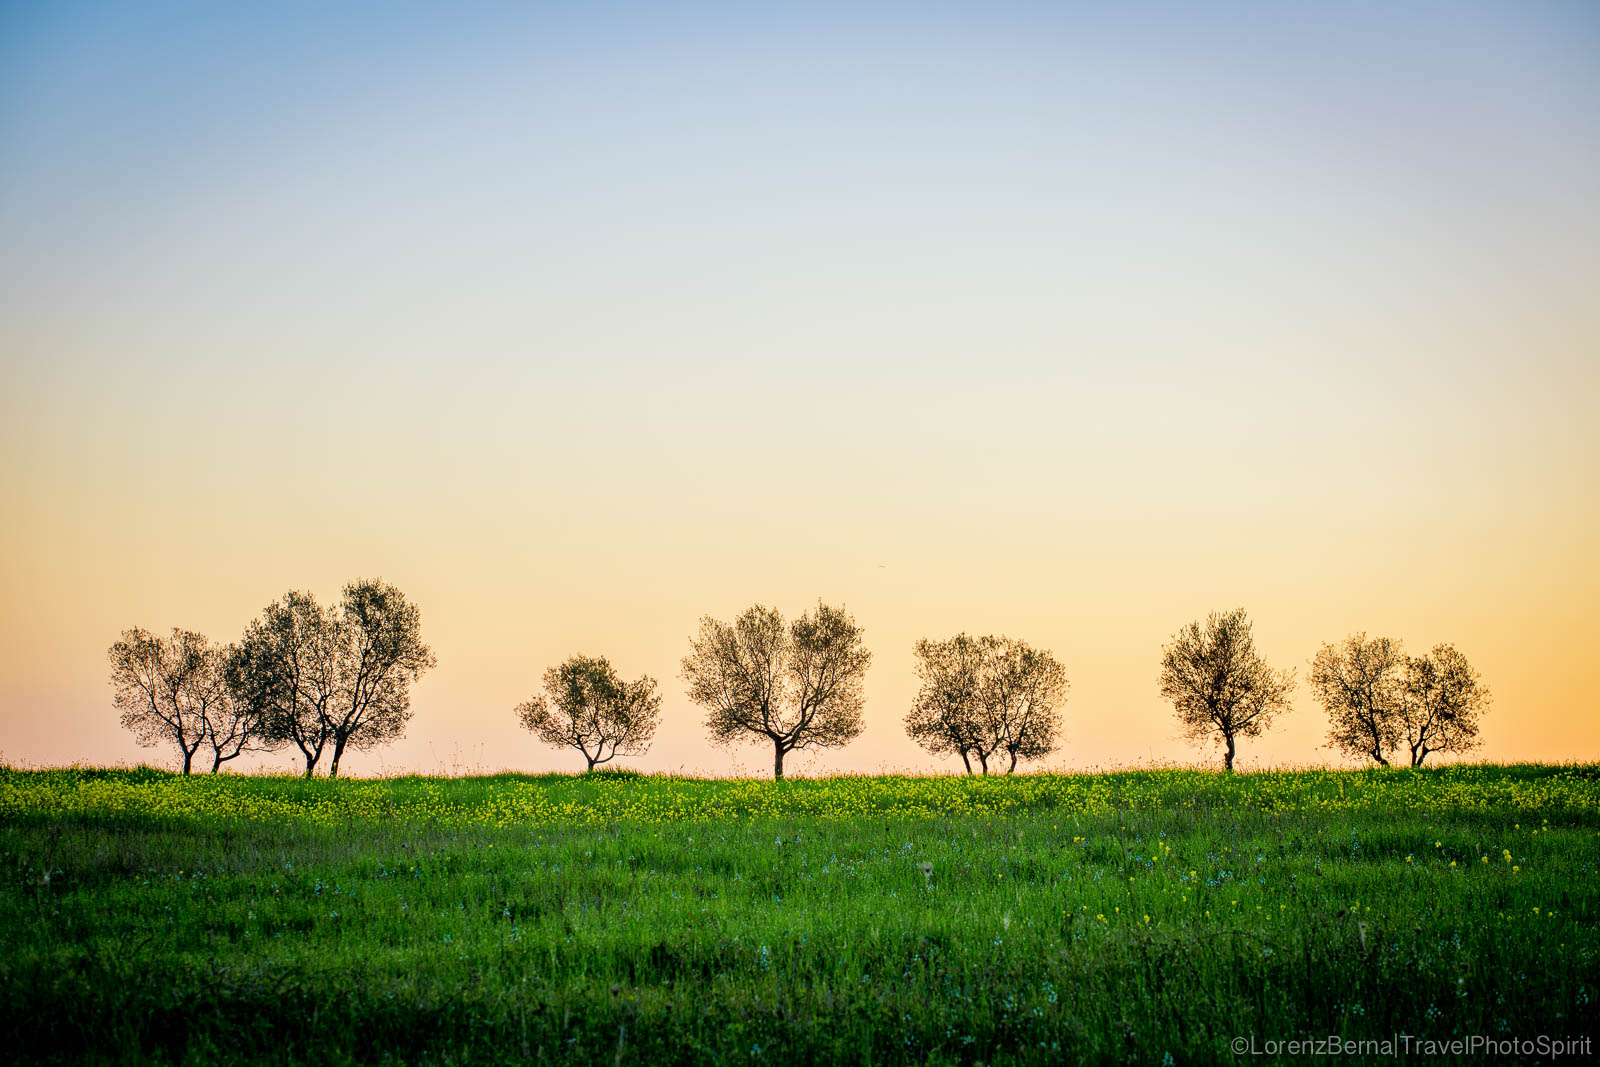 Olive trees in Sunrise, Tuscany, Italy.